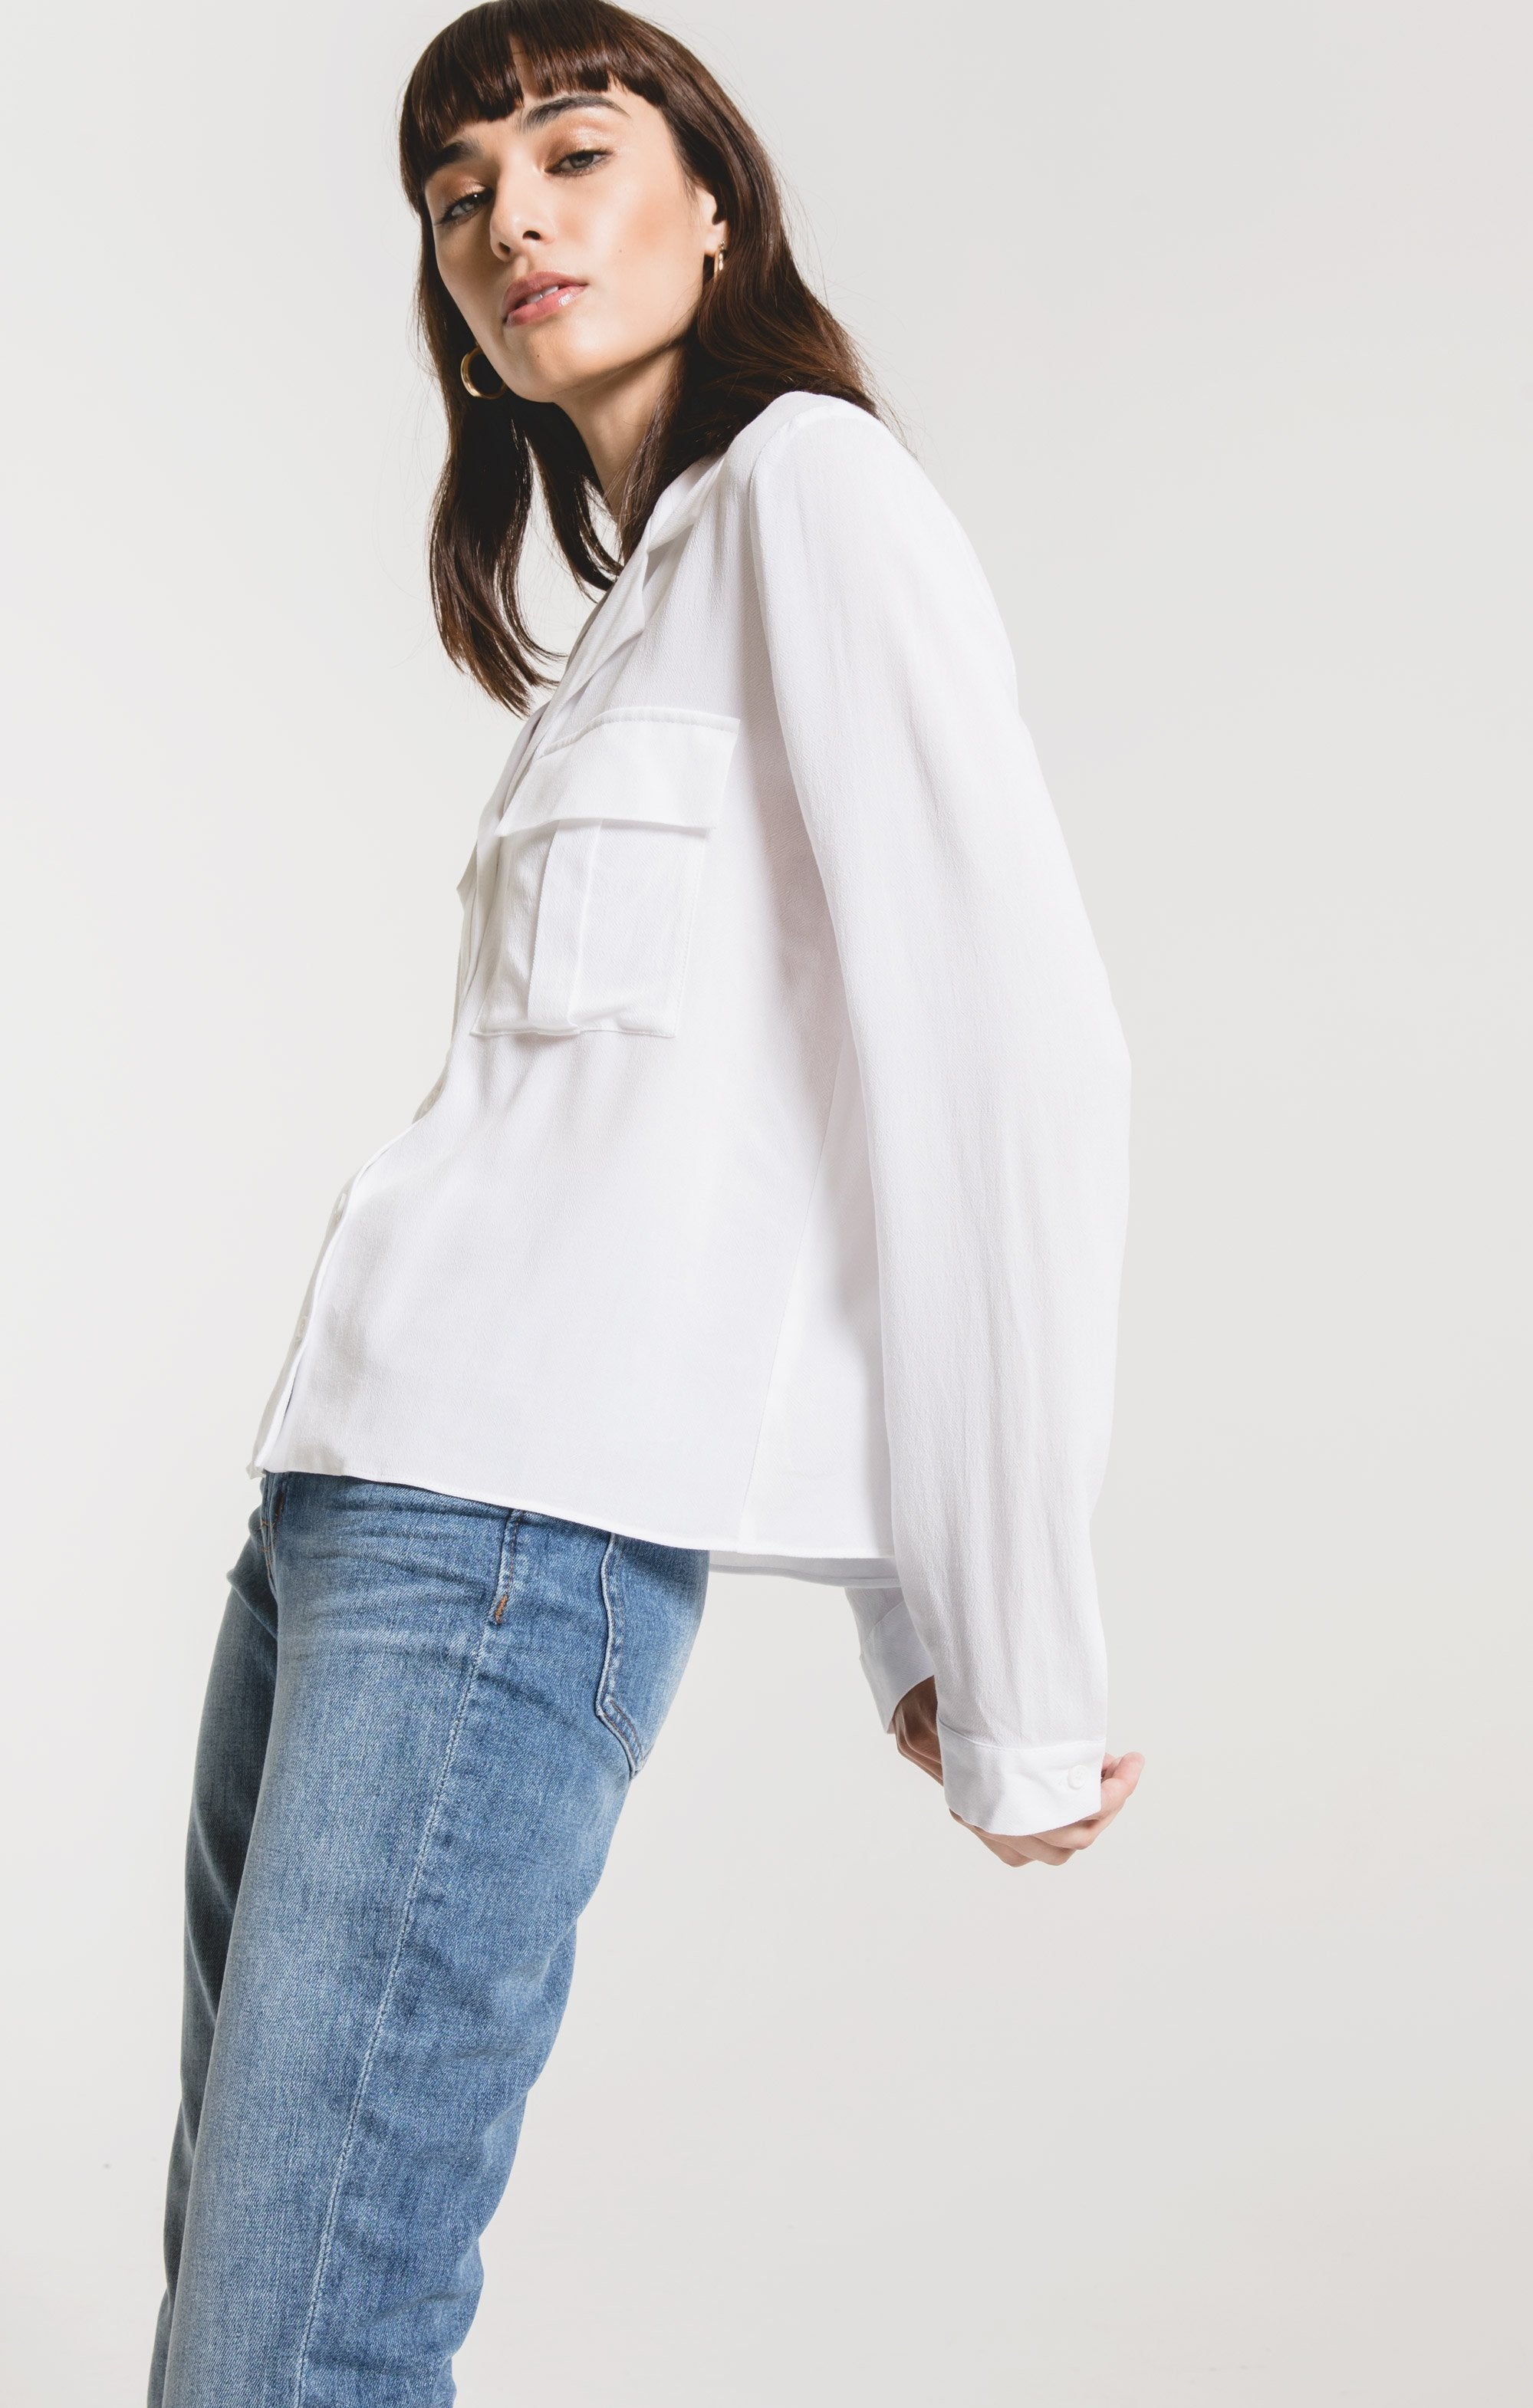 Mazarro Rayon Blouse in White